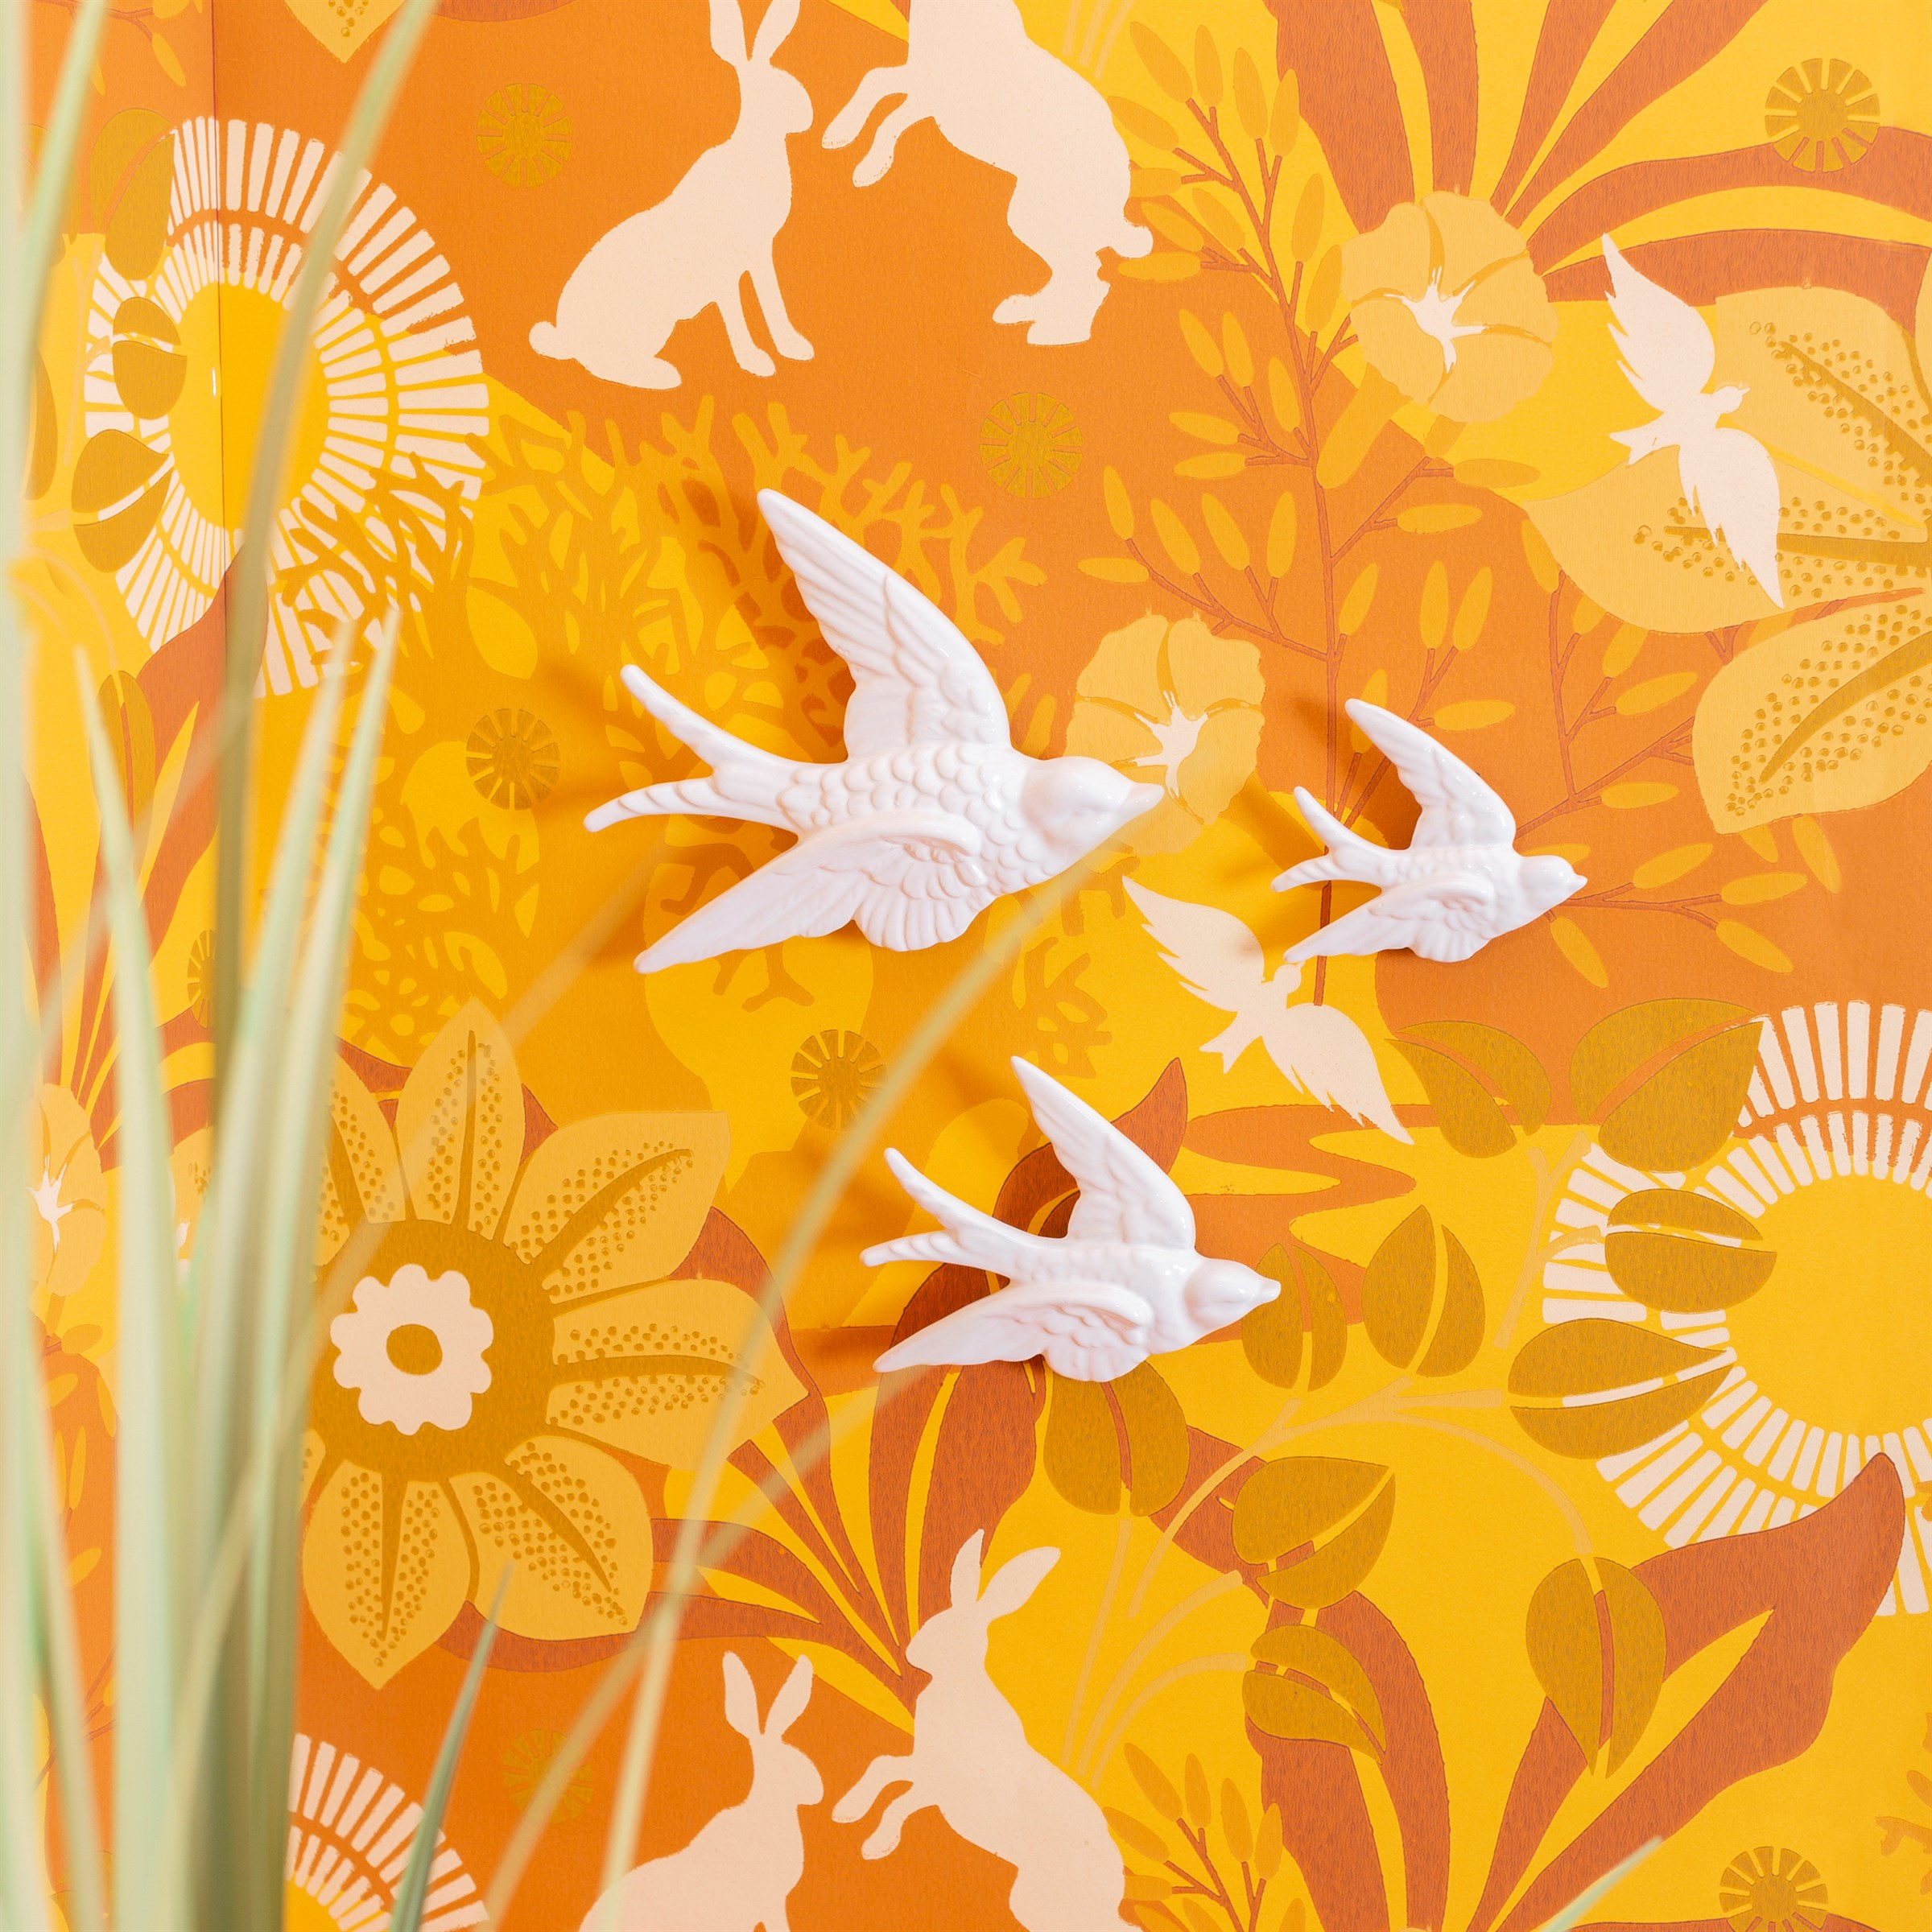 White Swallow Wall Decorations 3